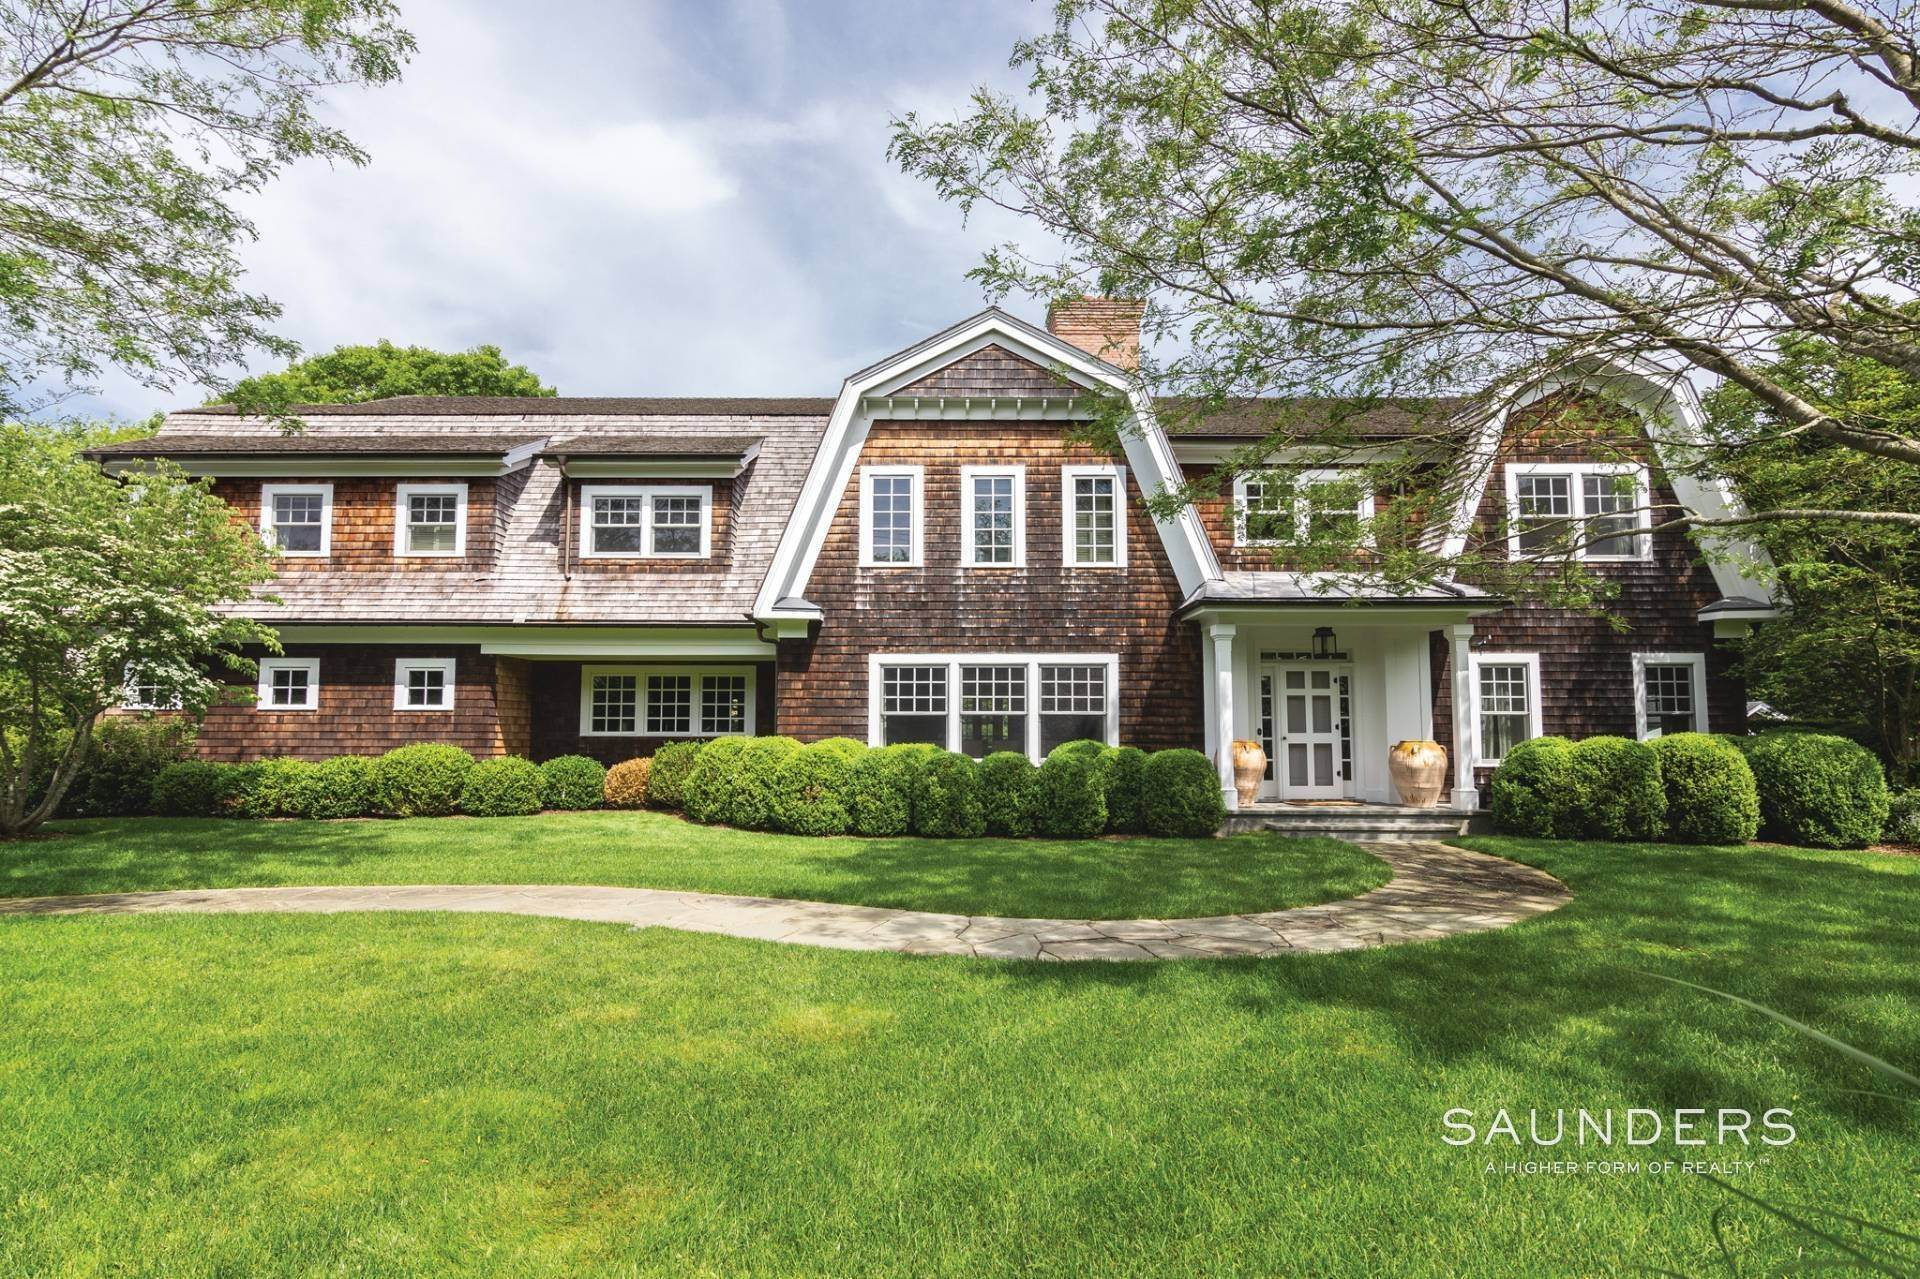 Single Family Homes at Beautiful House, Beautiful Garden, Prime Location East Hampton, East Hampton Town, NY 11937